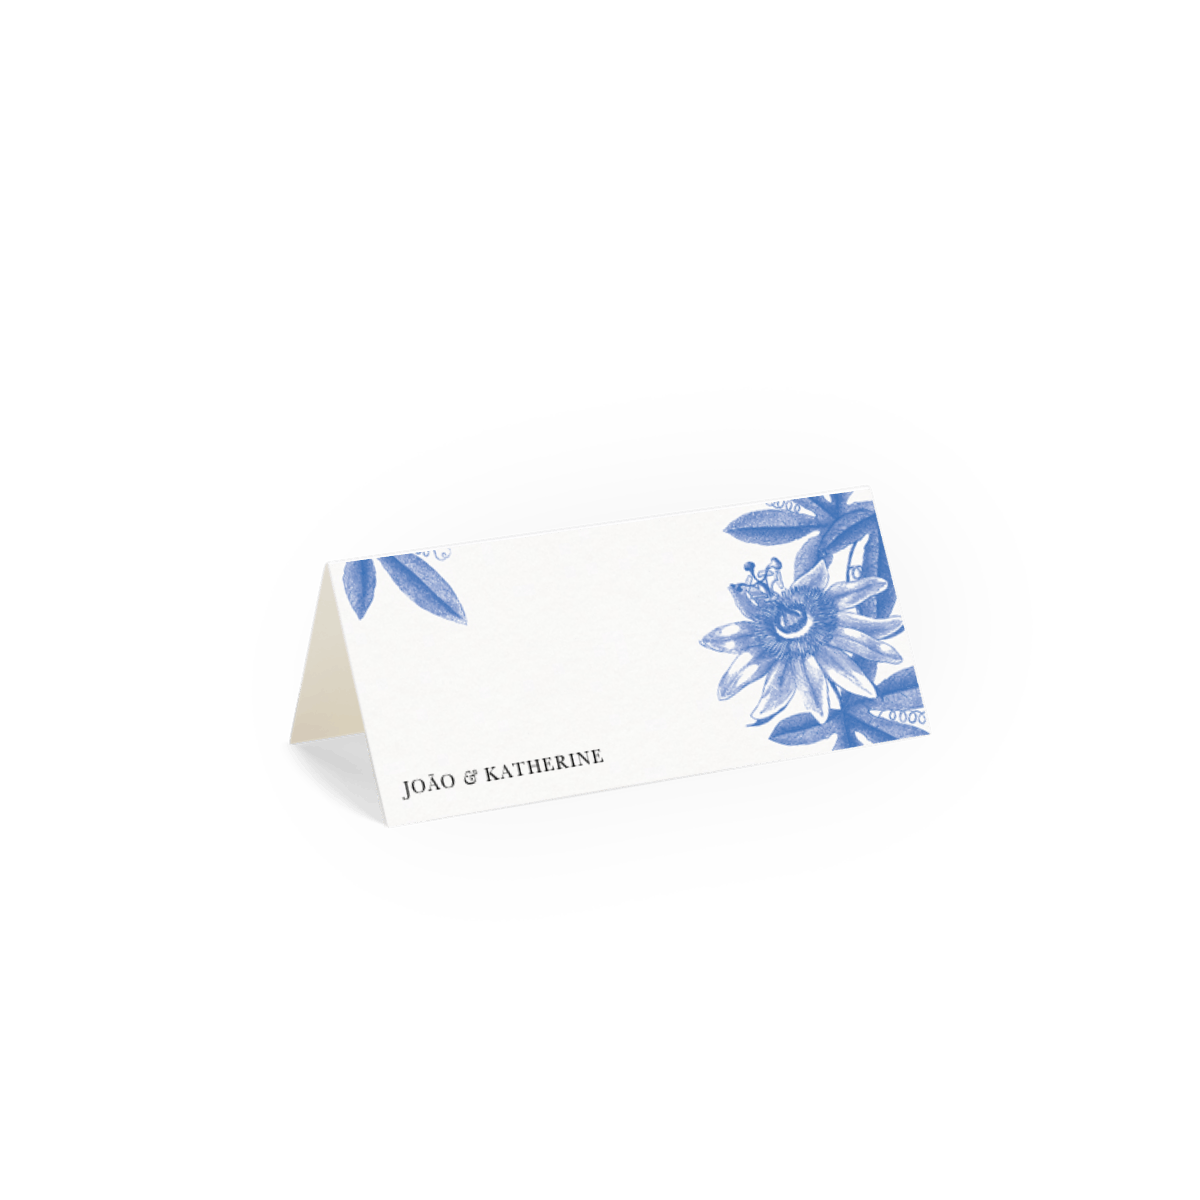 Https%3a%2f%2fwww.papier.com%2fproduct image%2f81099%2f15%2fblue passion flower 19392 back 1561566985.png?ixlib=rb 1.1